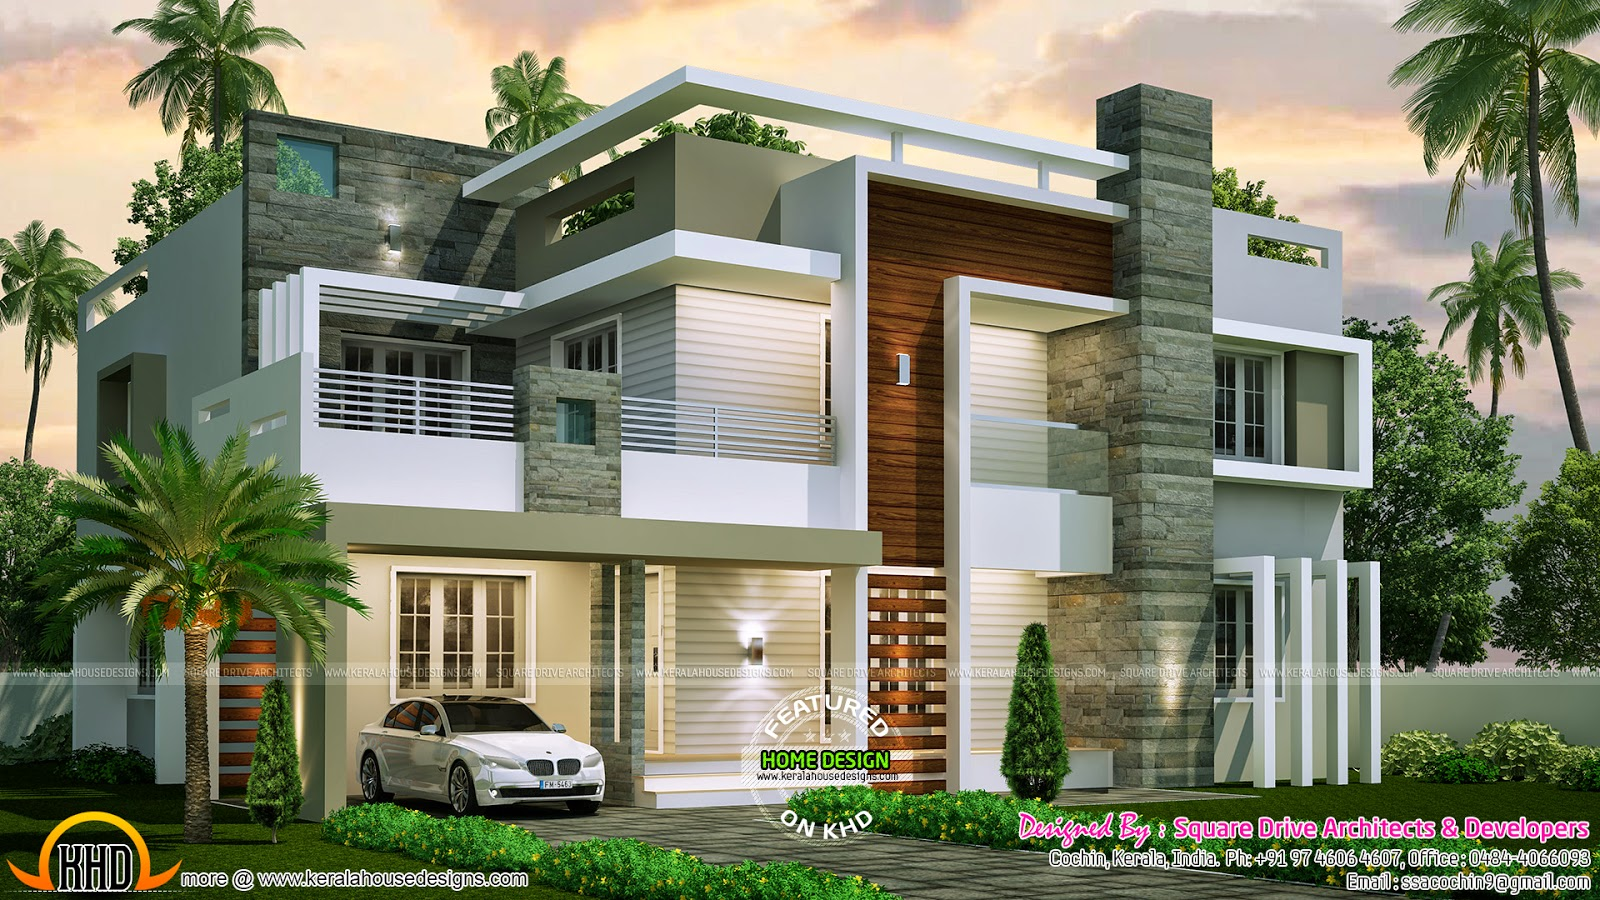 4 bedroom contemporary home design kerala home design for Best contemporary house design